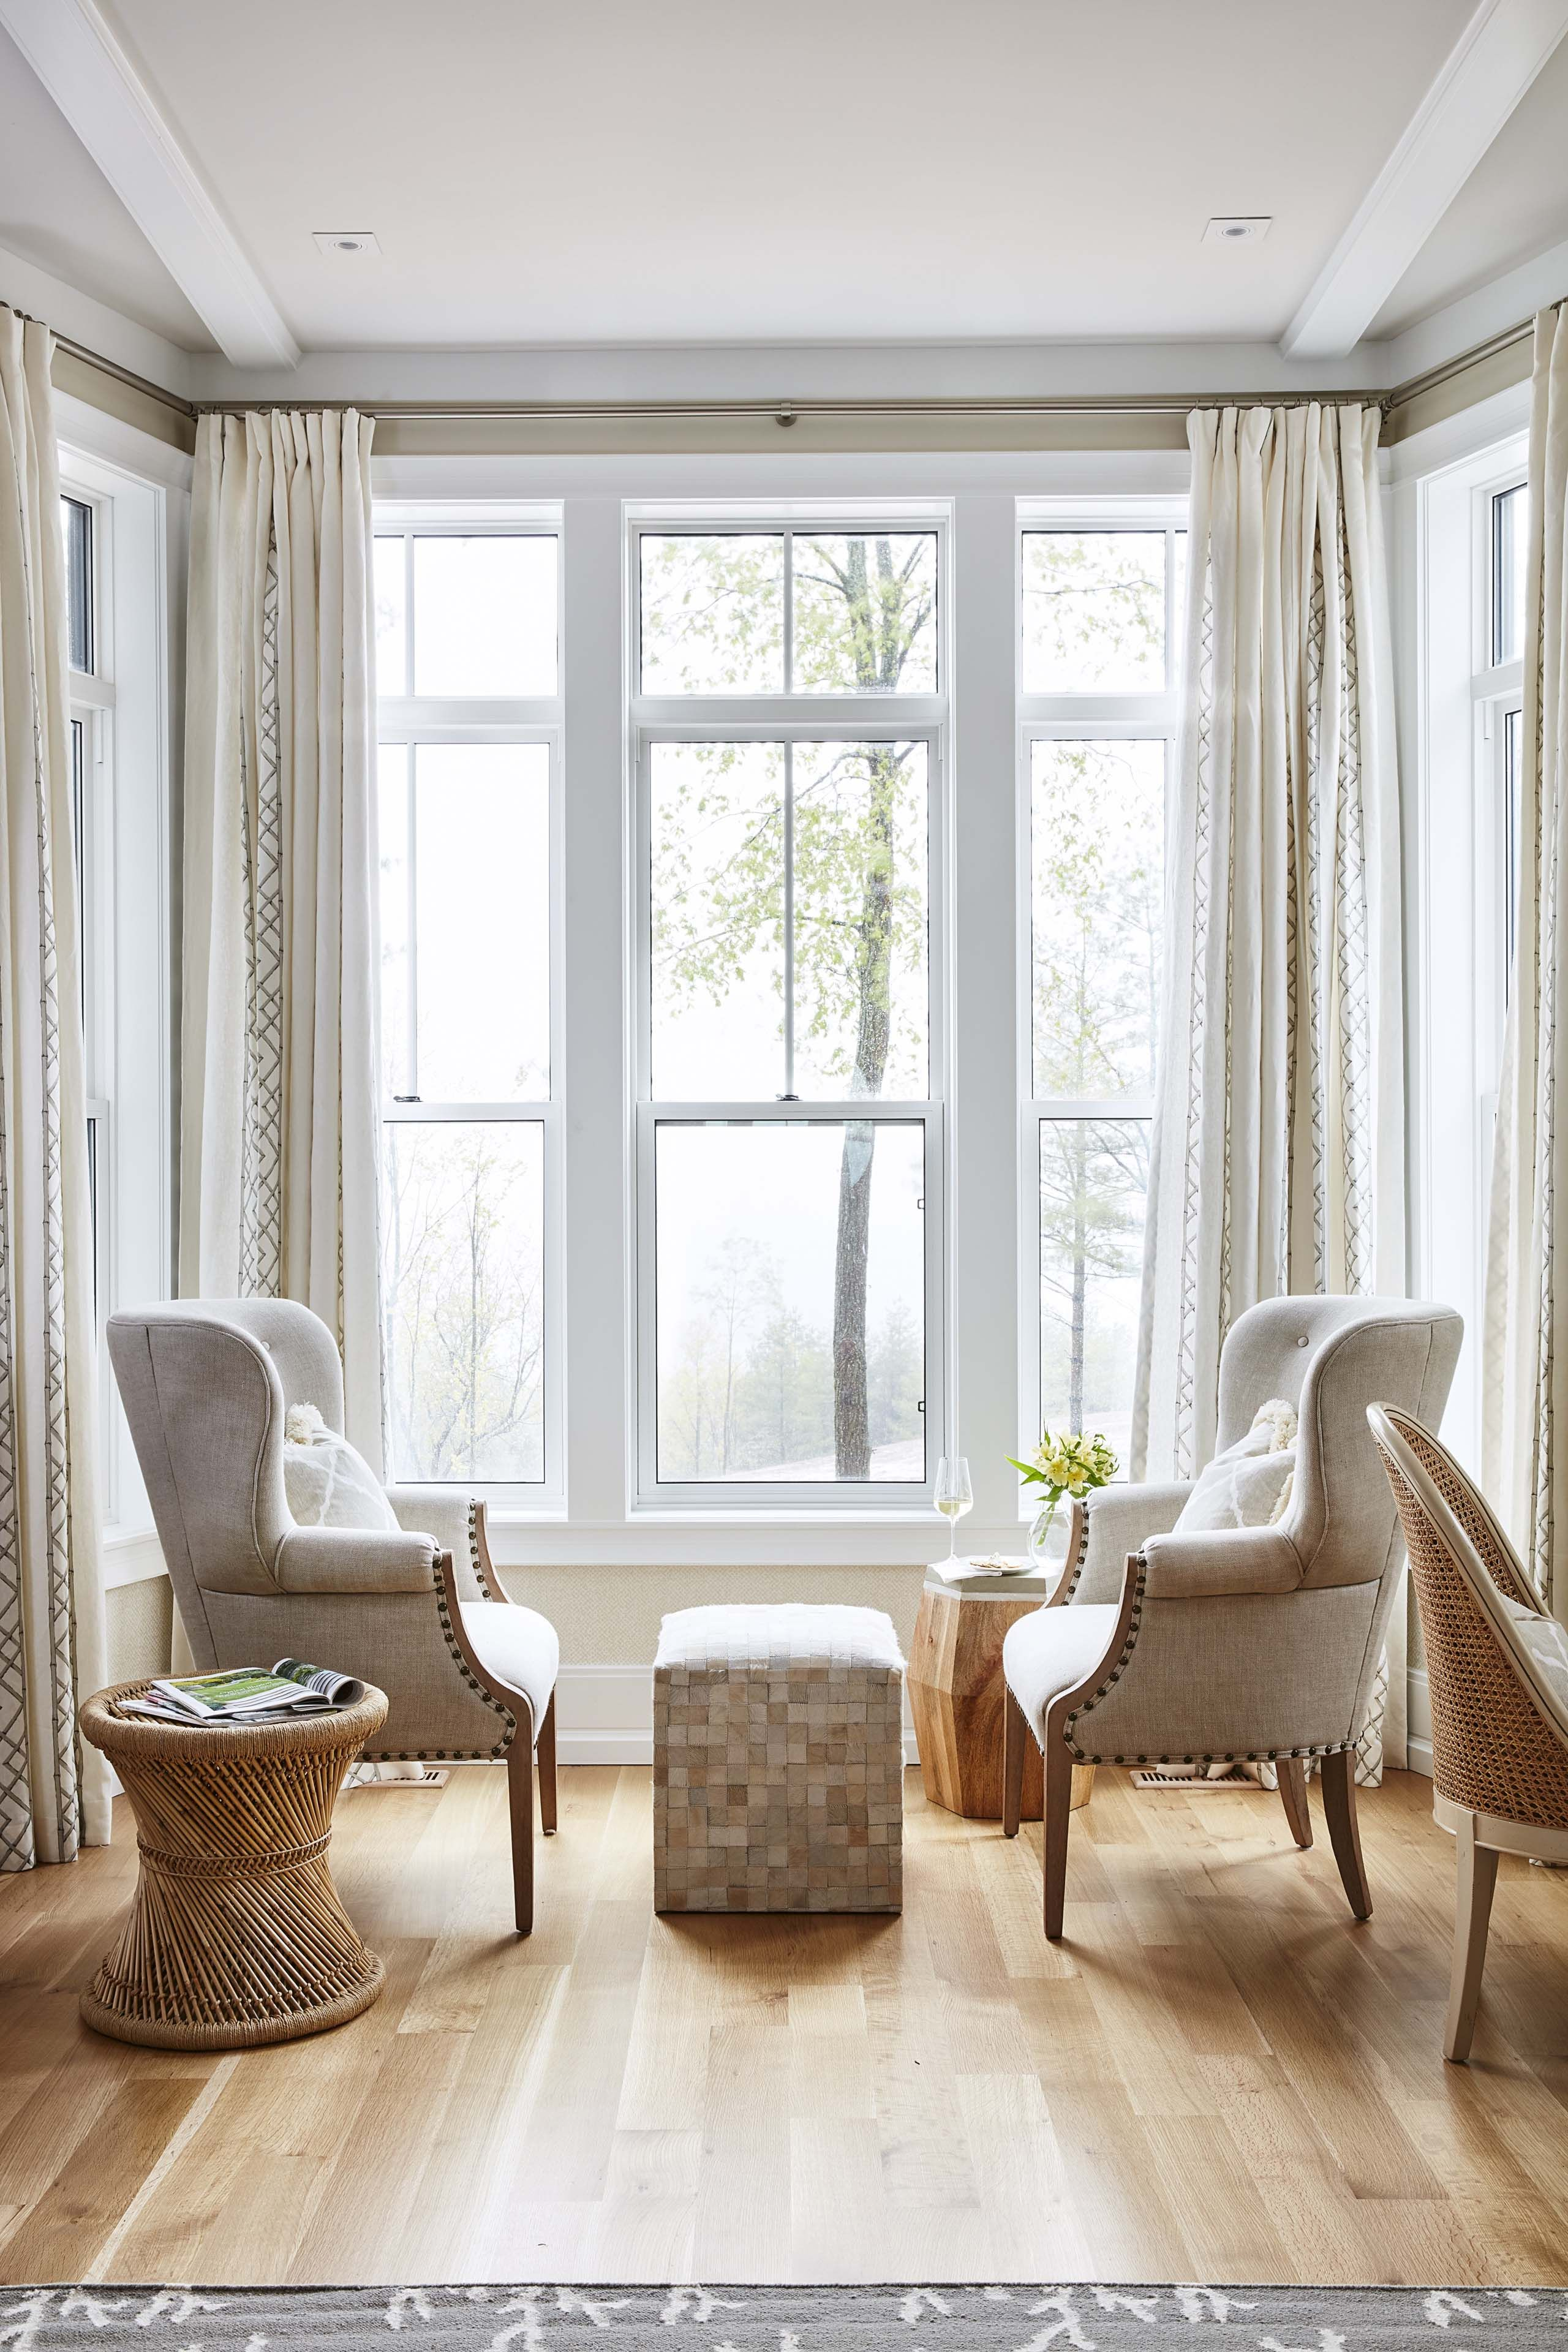 Shop the Room! Sarah Richardson's Ontario Living Room. #wingchairs #leatherpouf